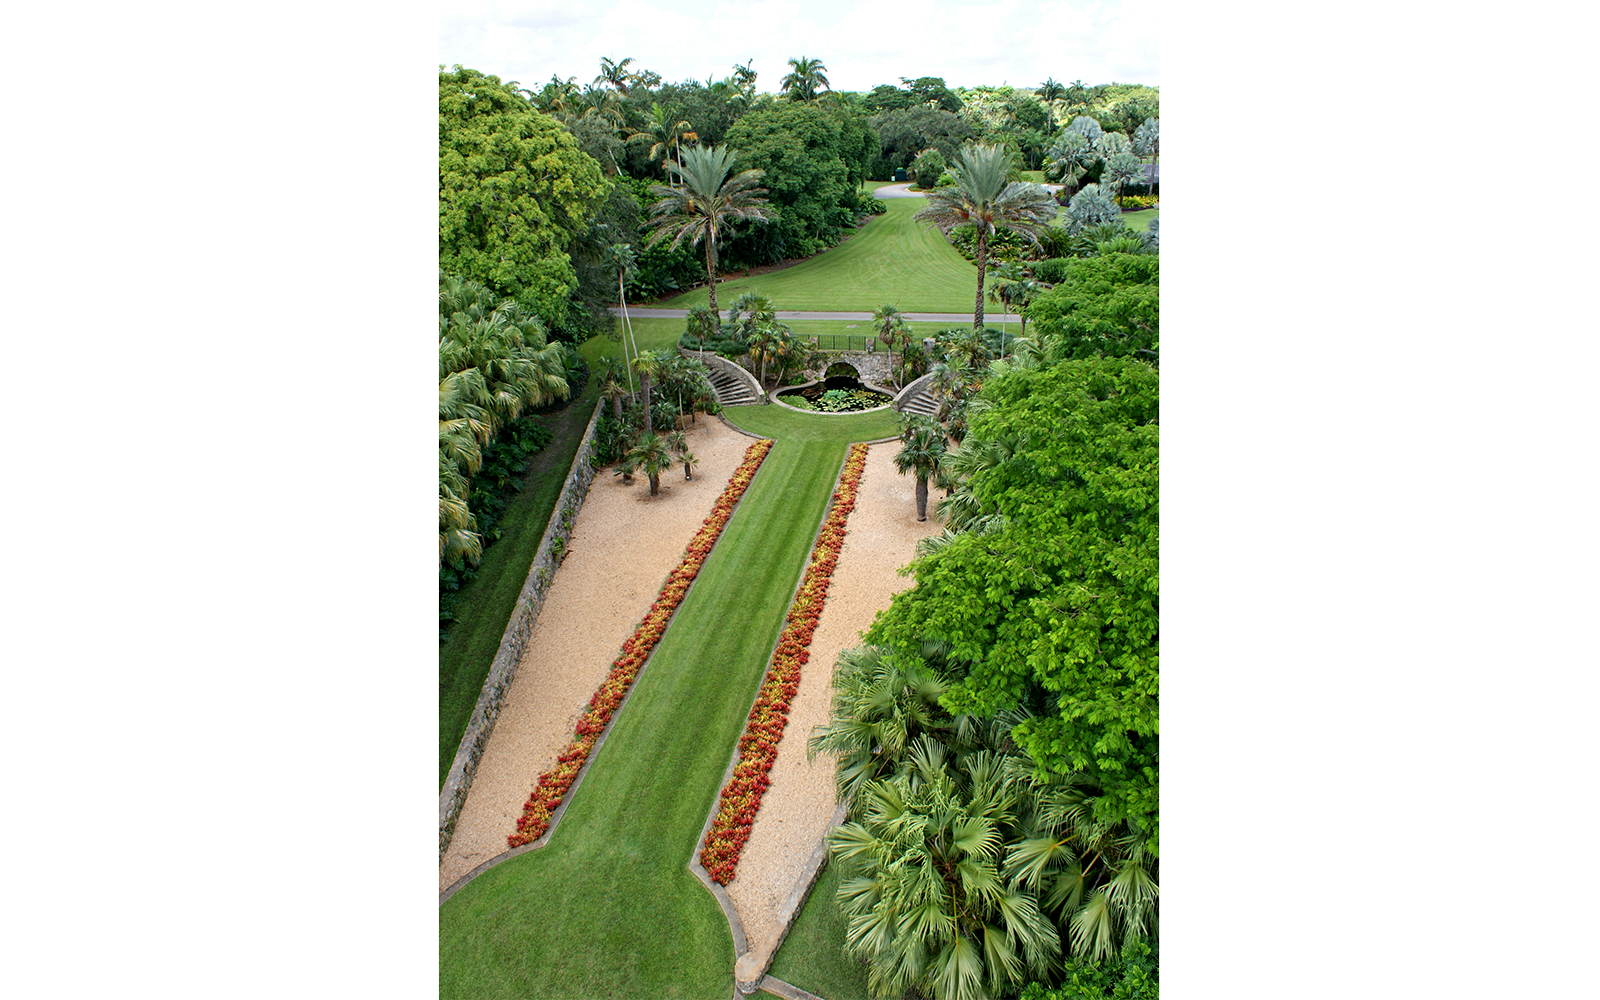 201405-w-beautiful-gardens-fairchild-tropical-botanic-garden